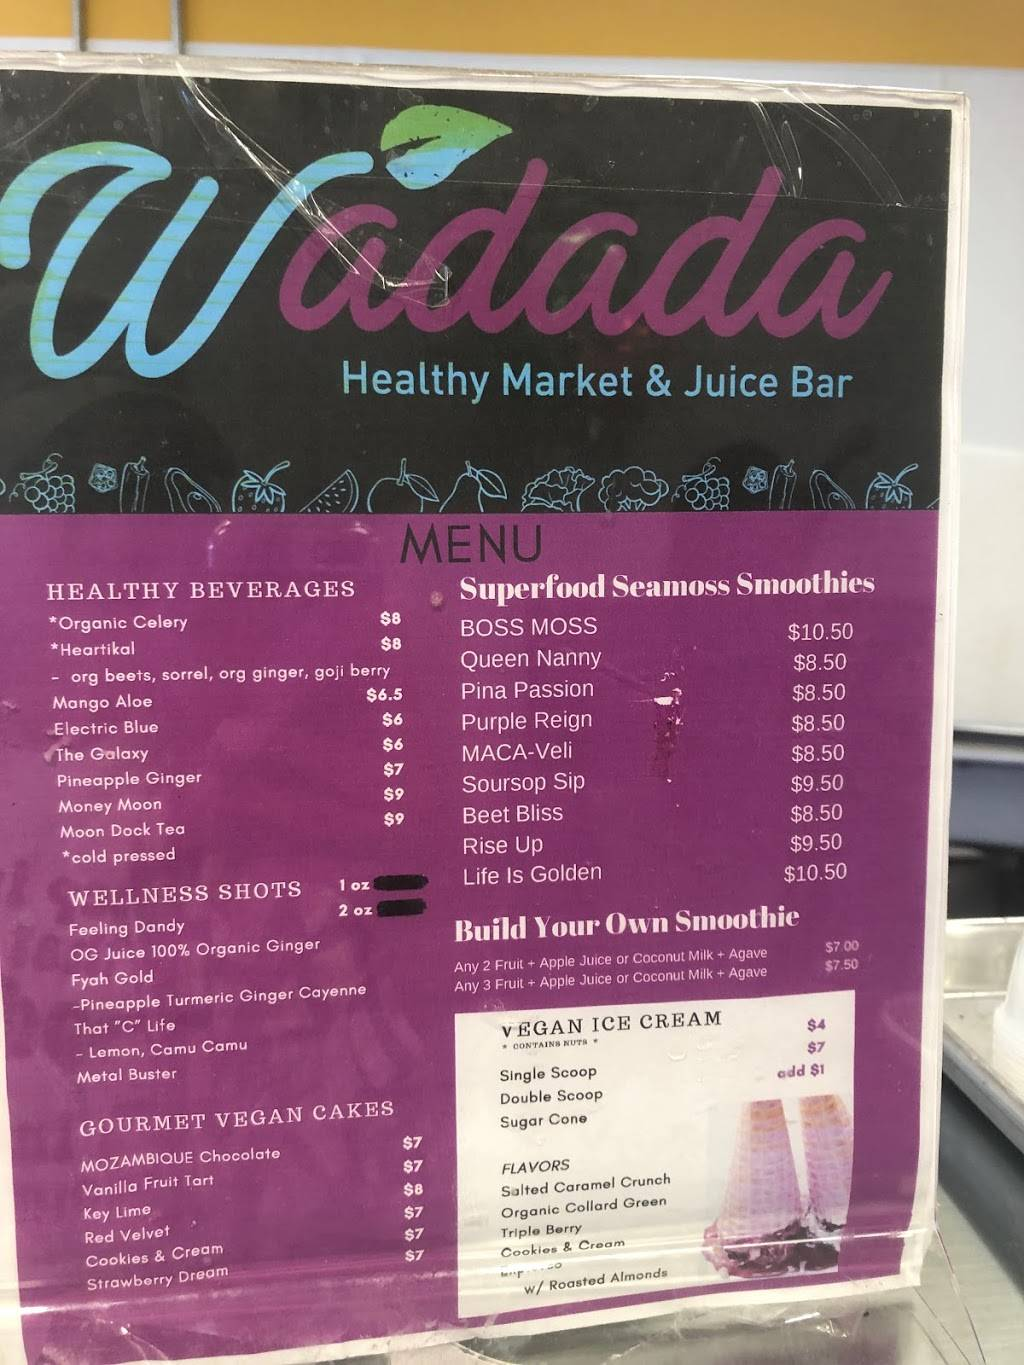 Wadada Healthy Market & Juice Bar | restaurant | 878 Ralph David Abernathy Blvd SW, Atlanta, GA 30310, USA